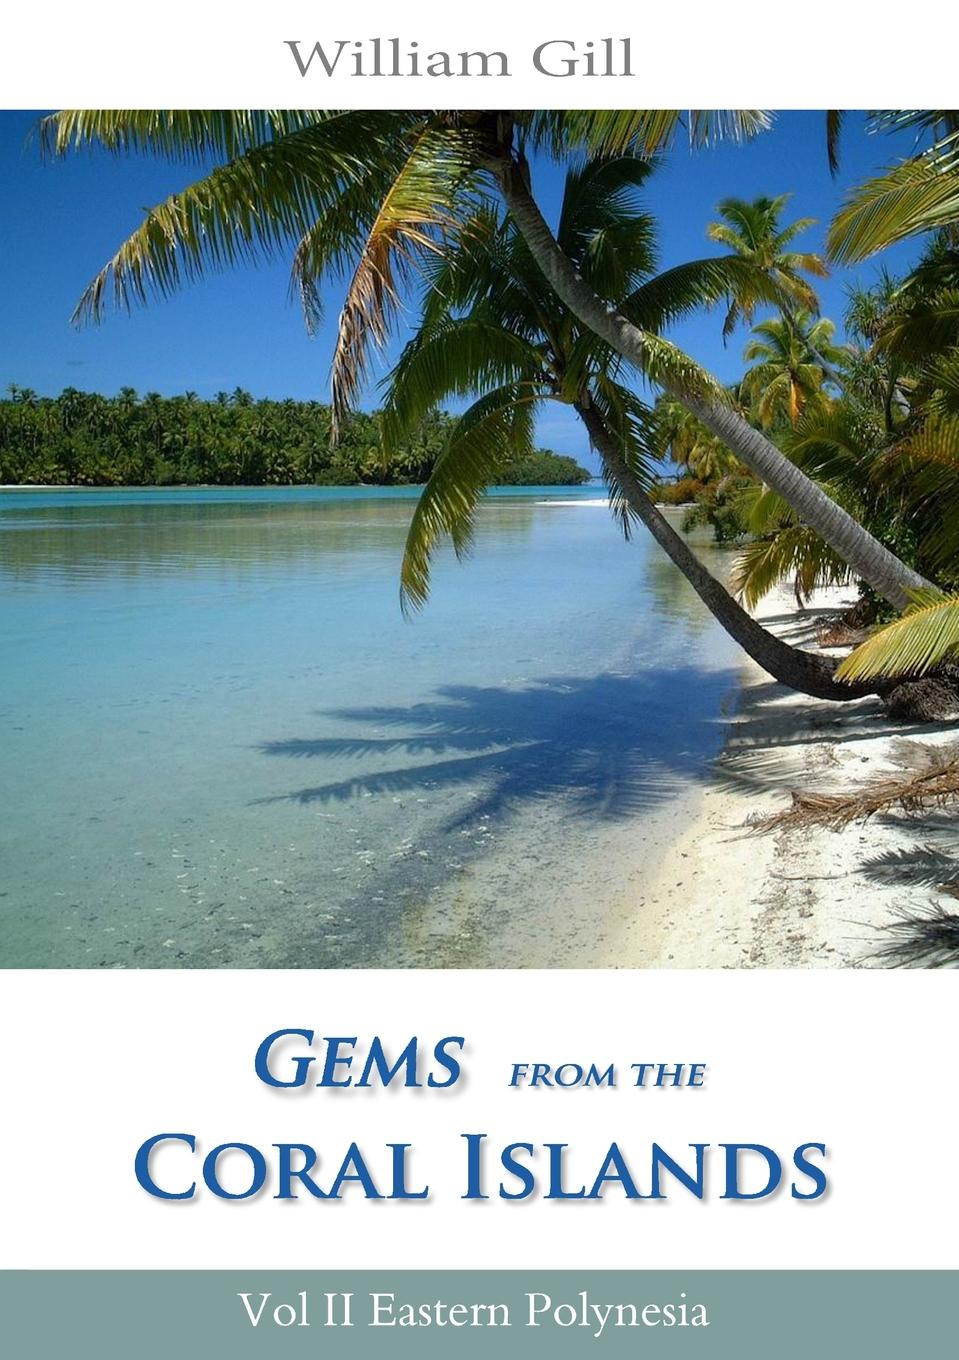 Gems from the Coral Islands. Vol 2, Eastern Polynesia